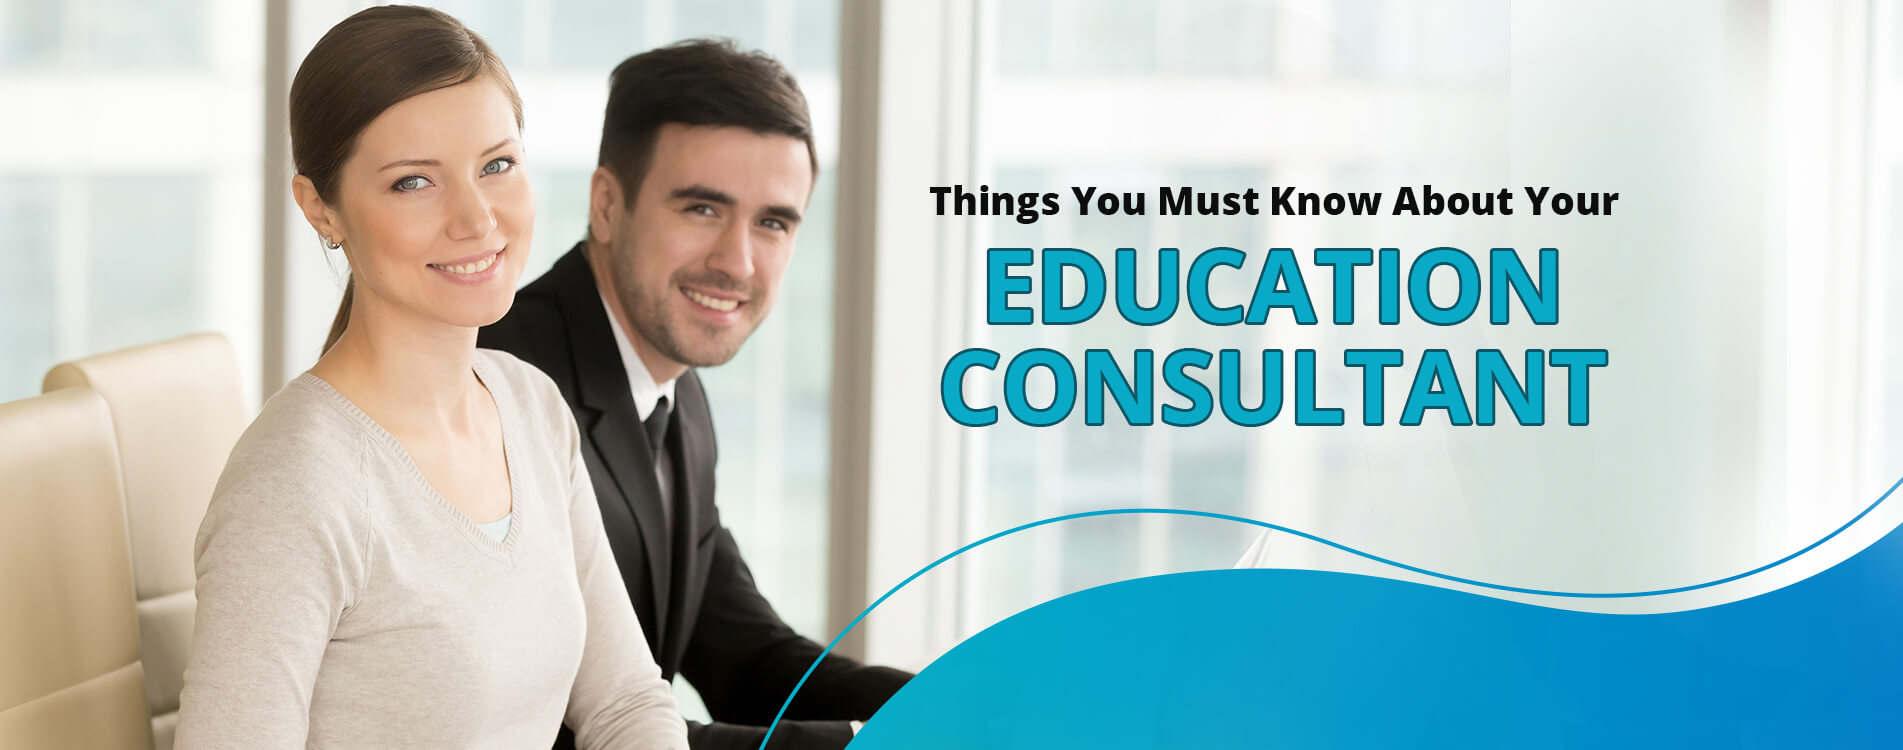 Things You Must Know About Your Education Consultant